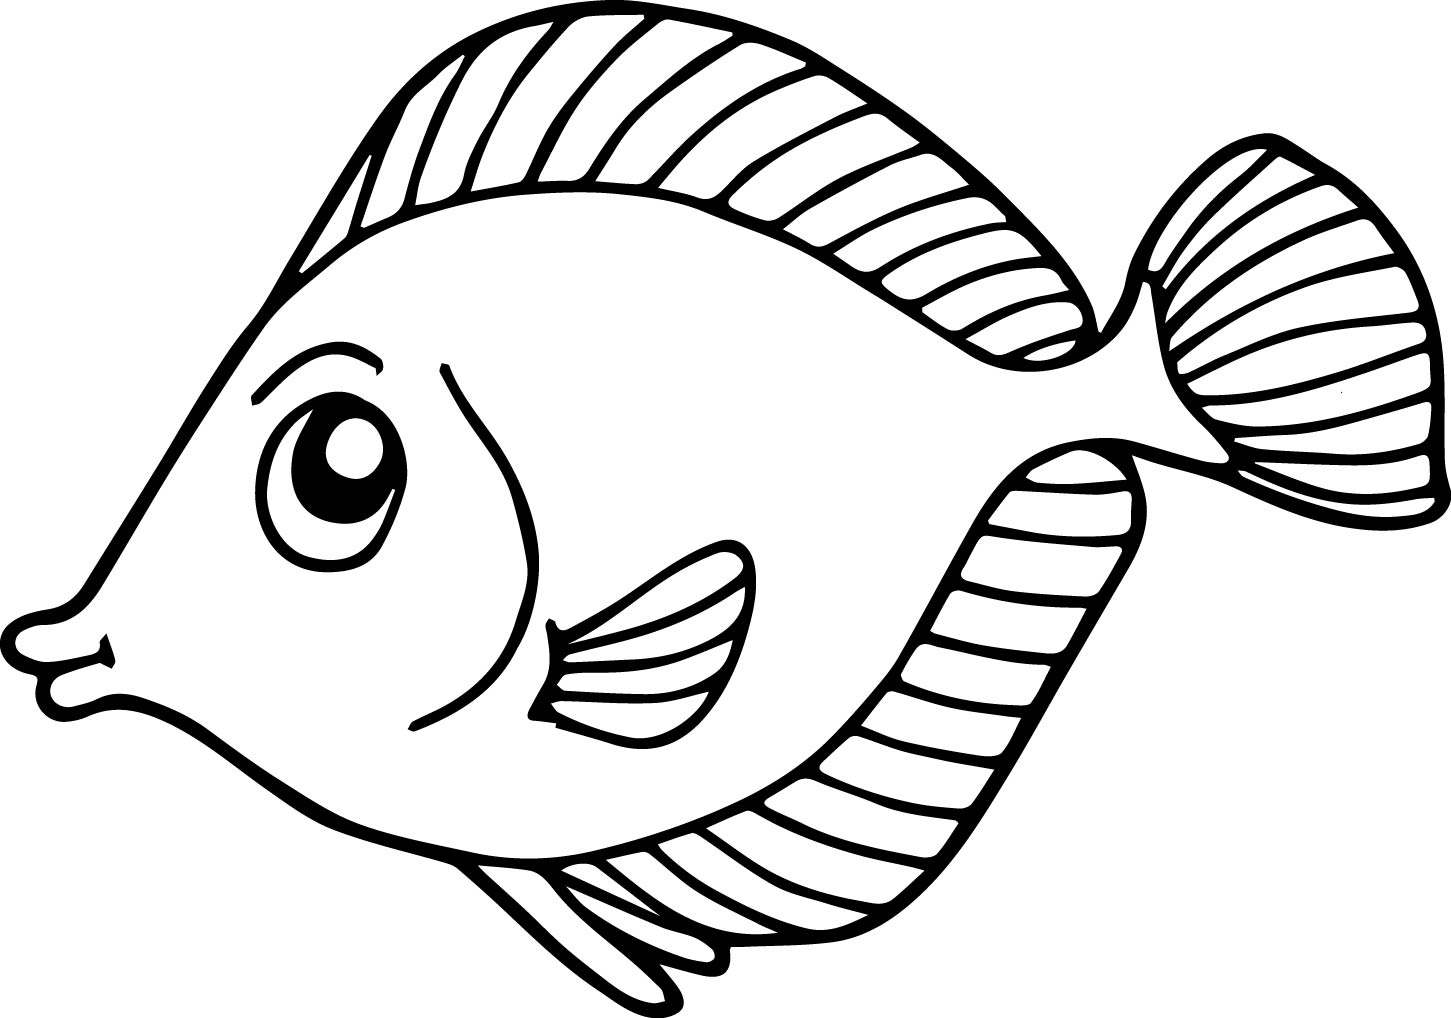 fish coloring print download cute and educative fish coloring pages fish coloring